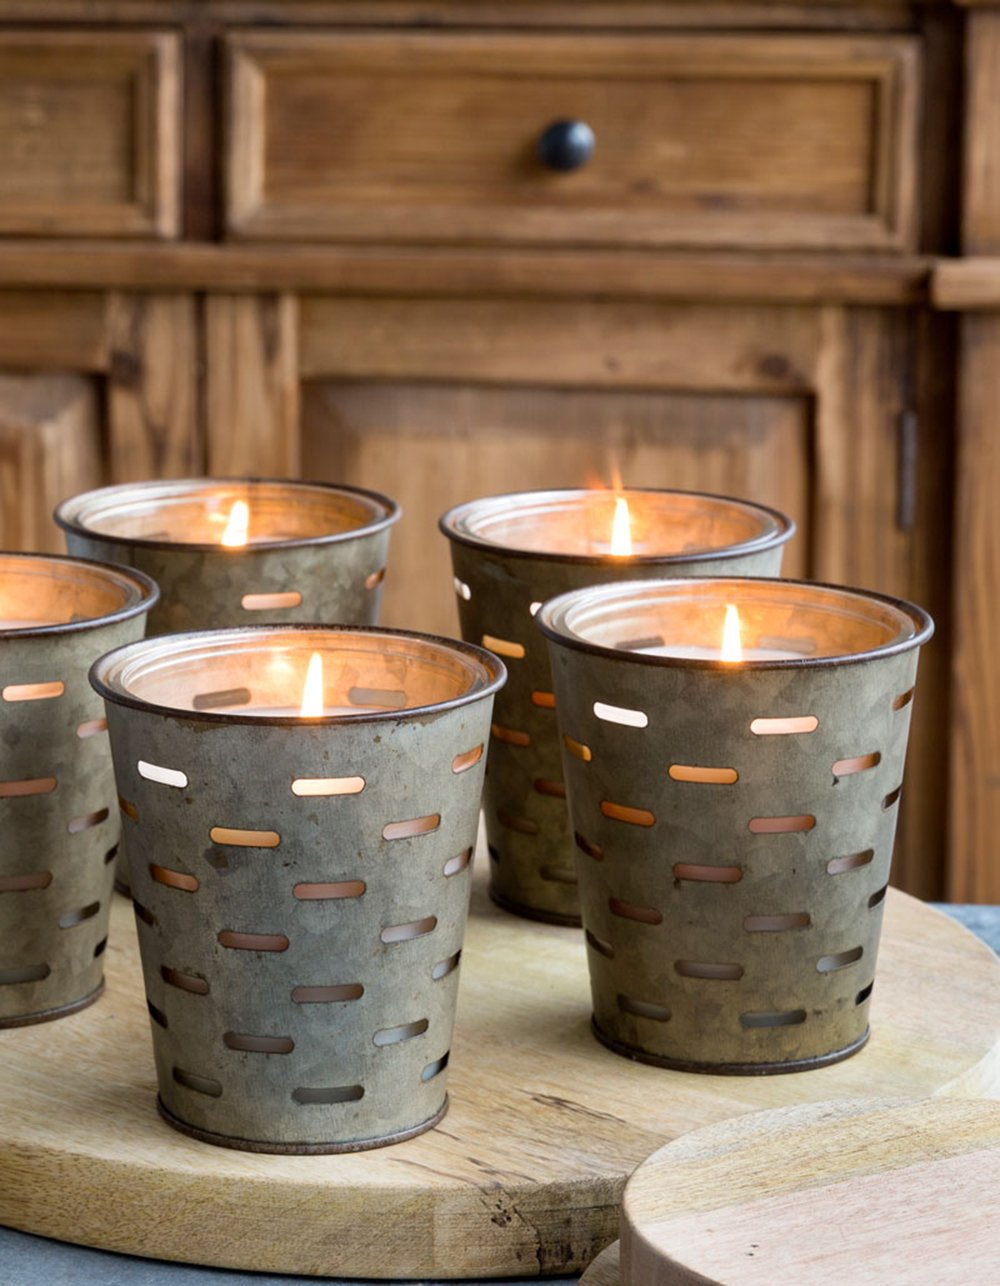 Olive bucket fragrance candle - Come on over to enjoy 5 Autumn Recipes With Apples + Simple Fall Decorating Tips on Hello Lovely!